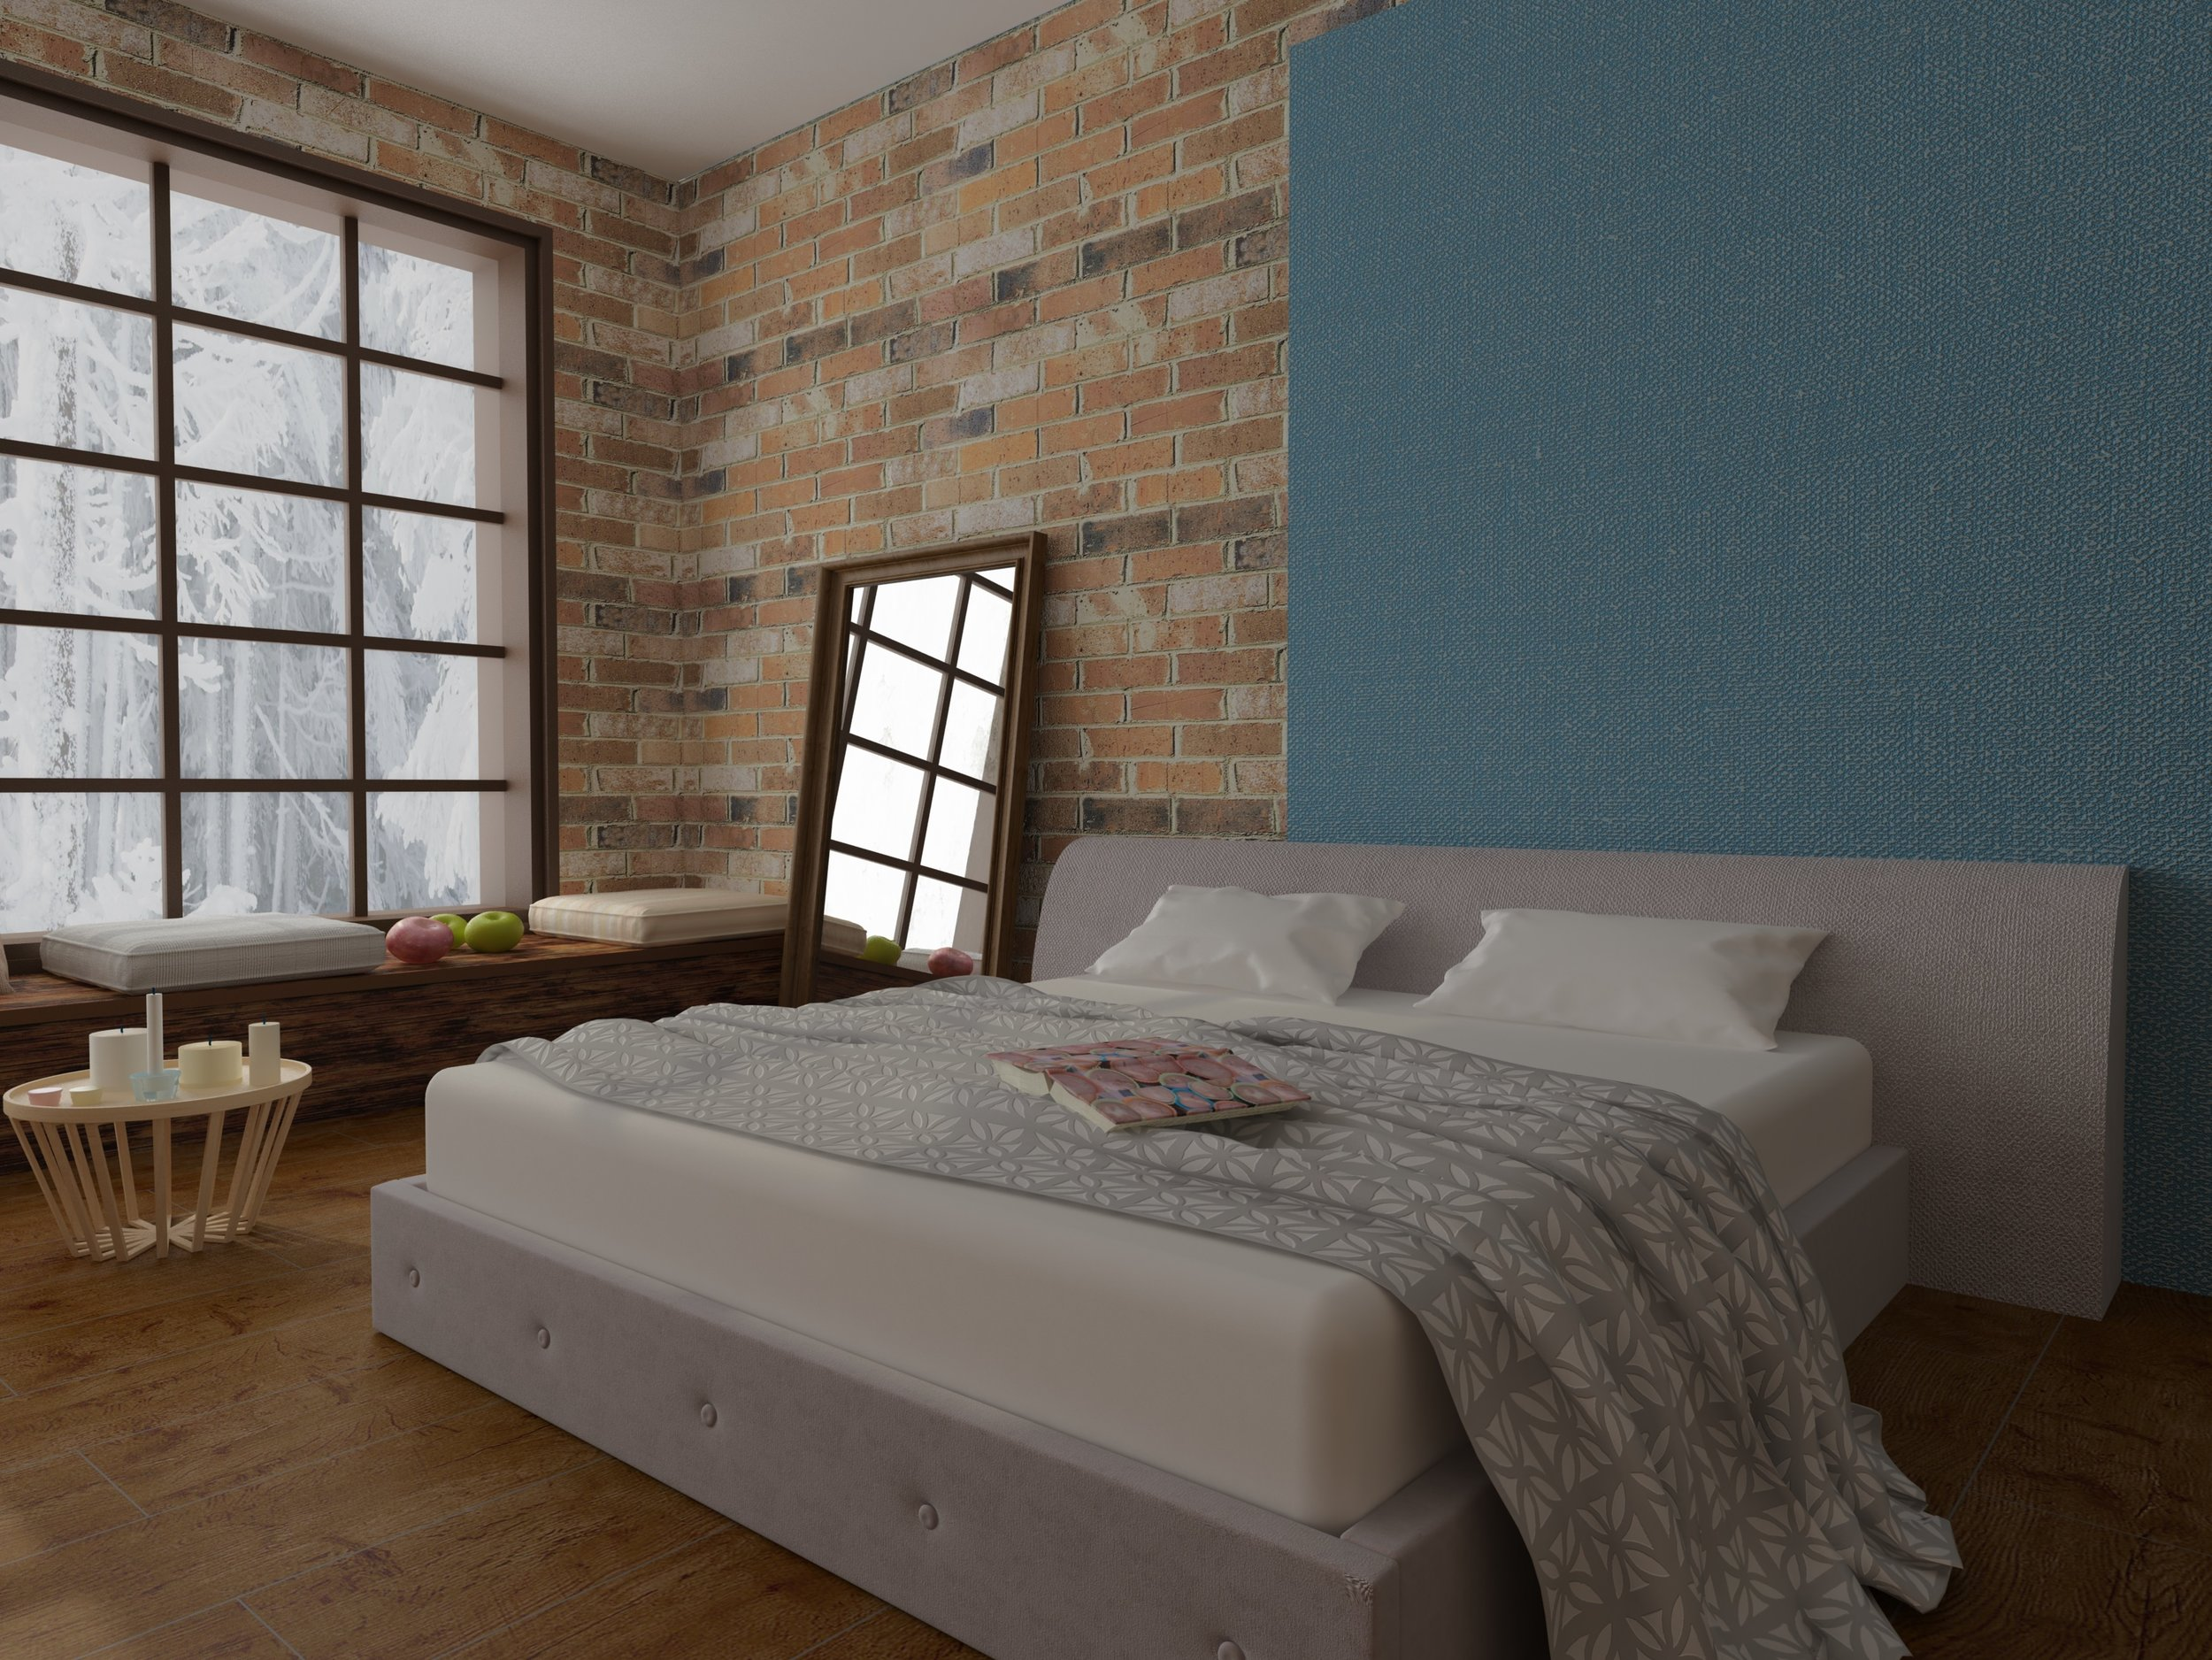 Decorate Your Home's Bedroom with Interior Masonry in Kings Park, NY